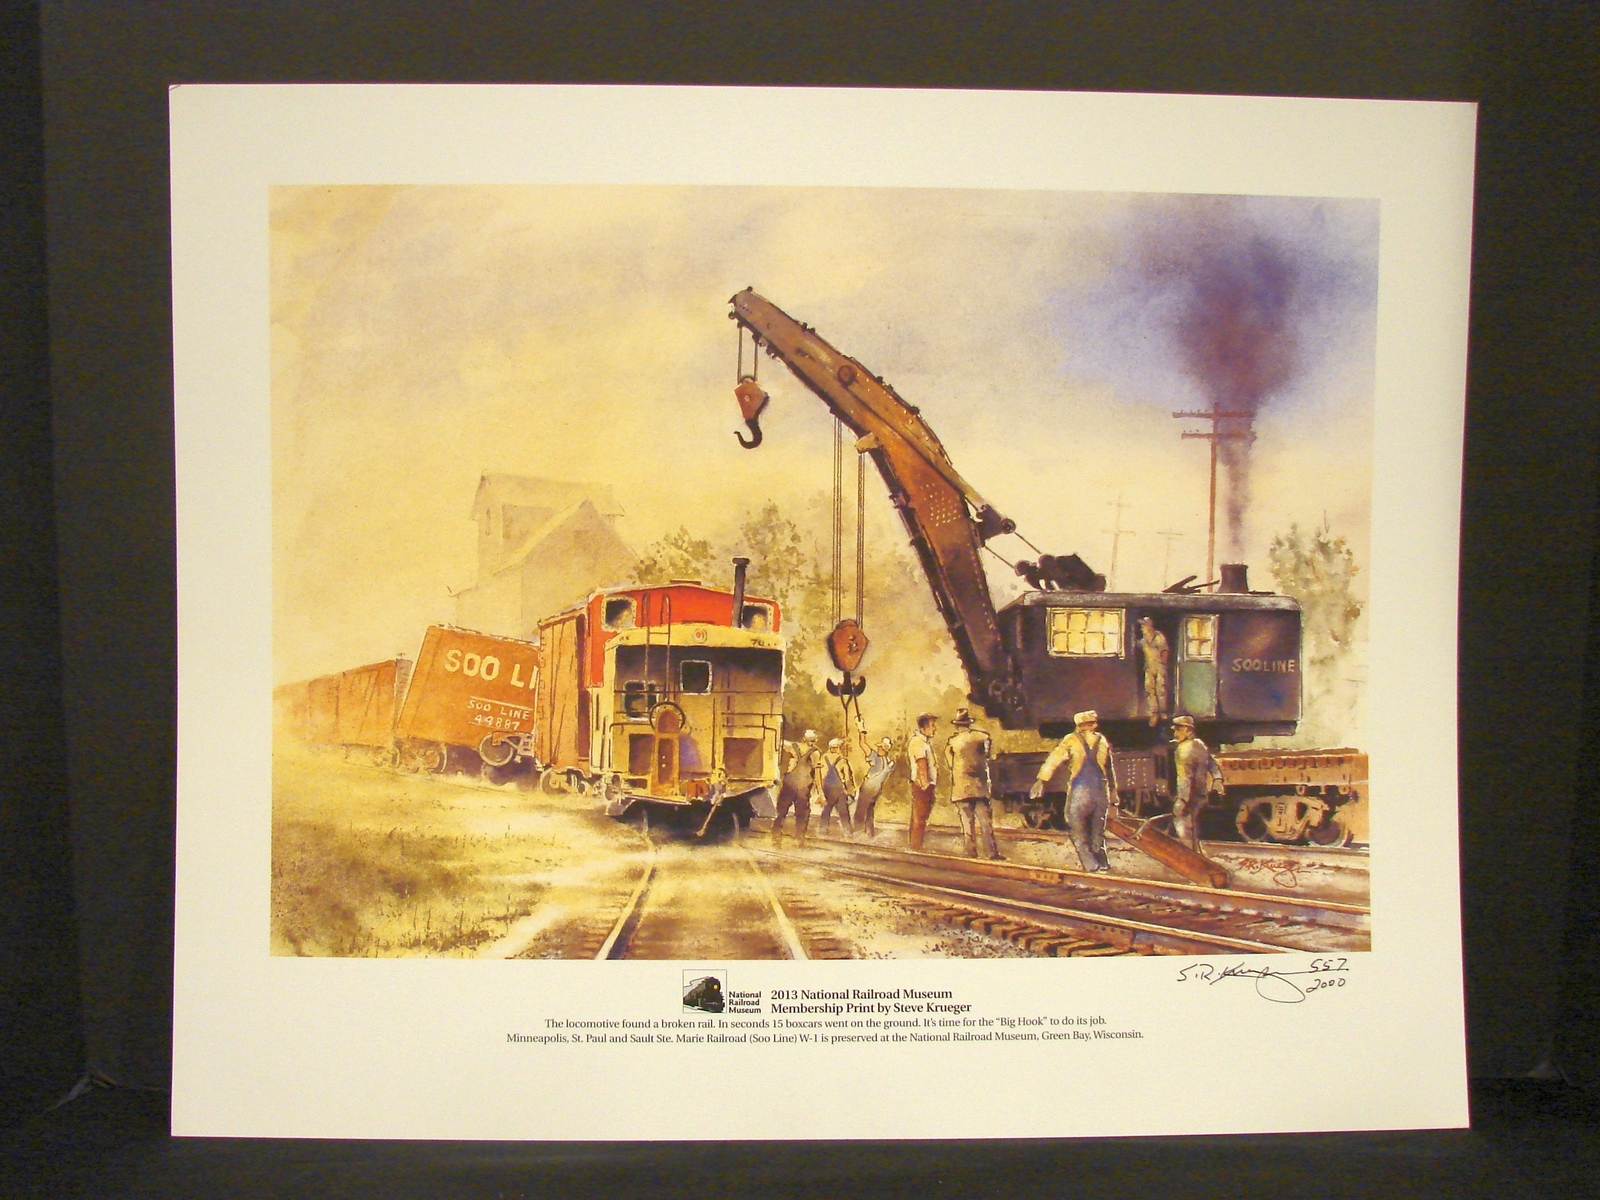 Primary image for National Railroad Museum Signed , Numbered Print (2013 ) by Steve Krueger